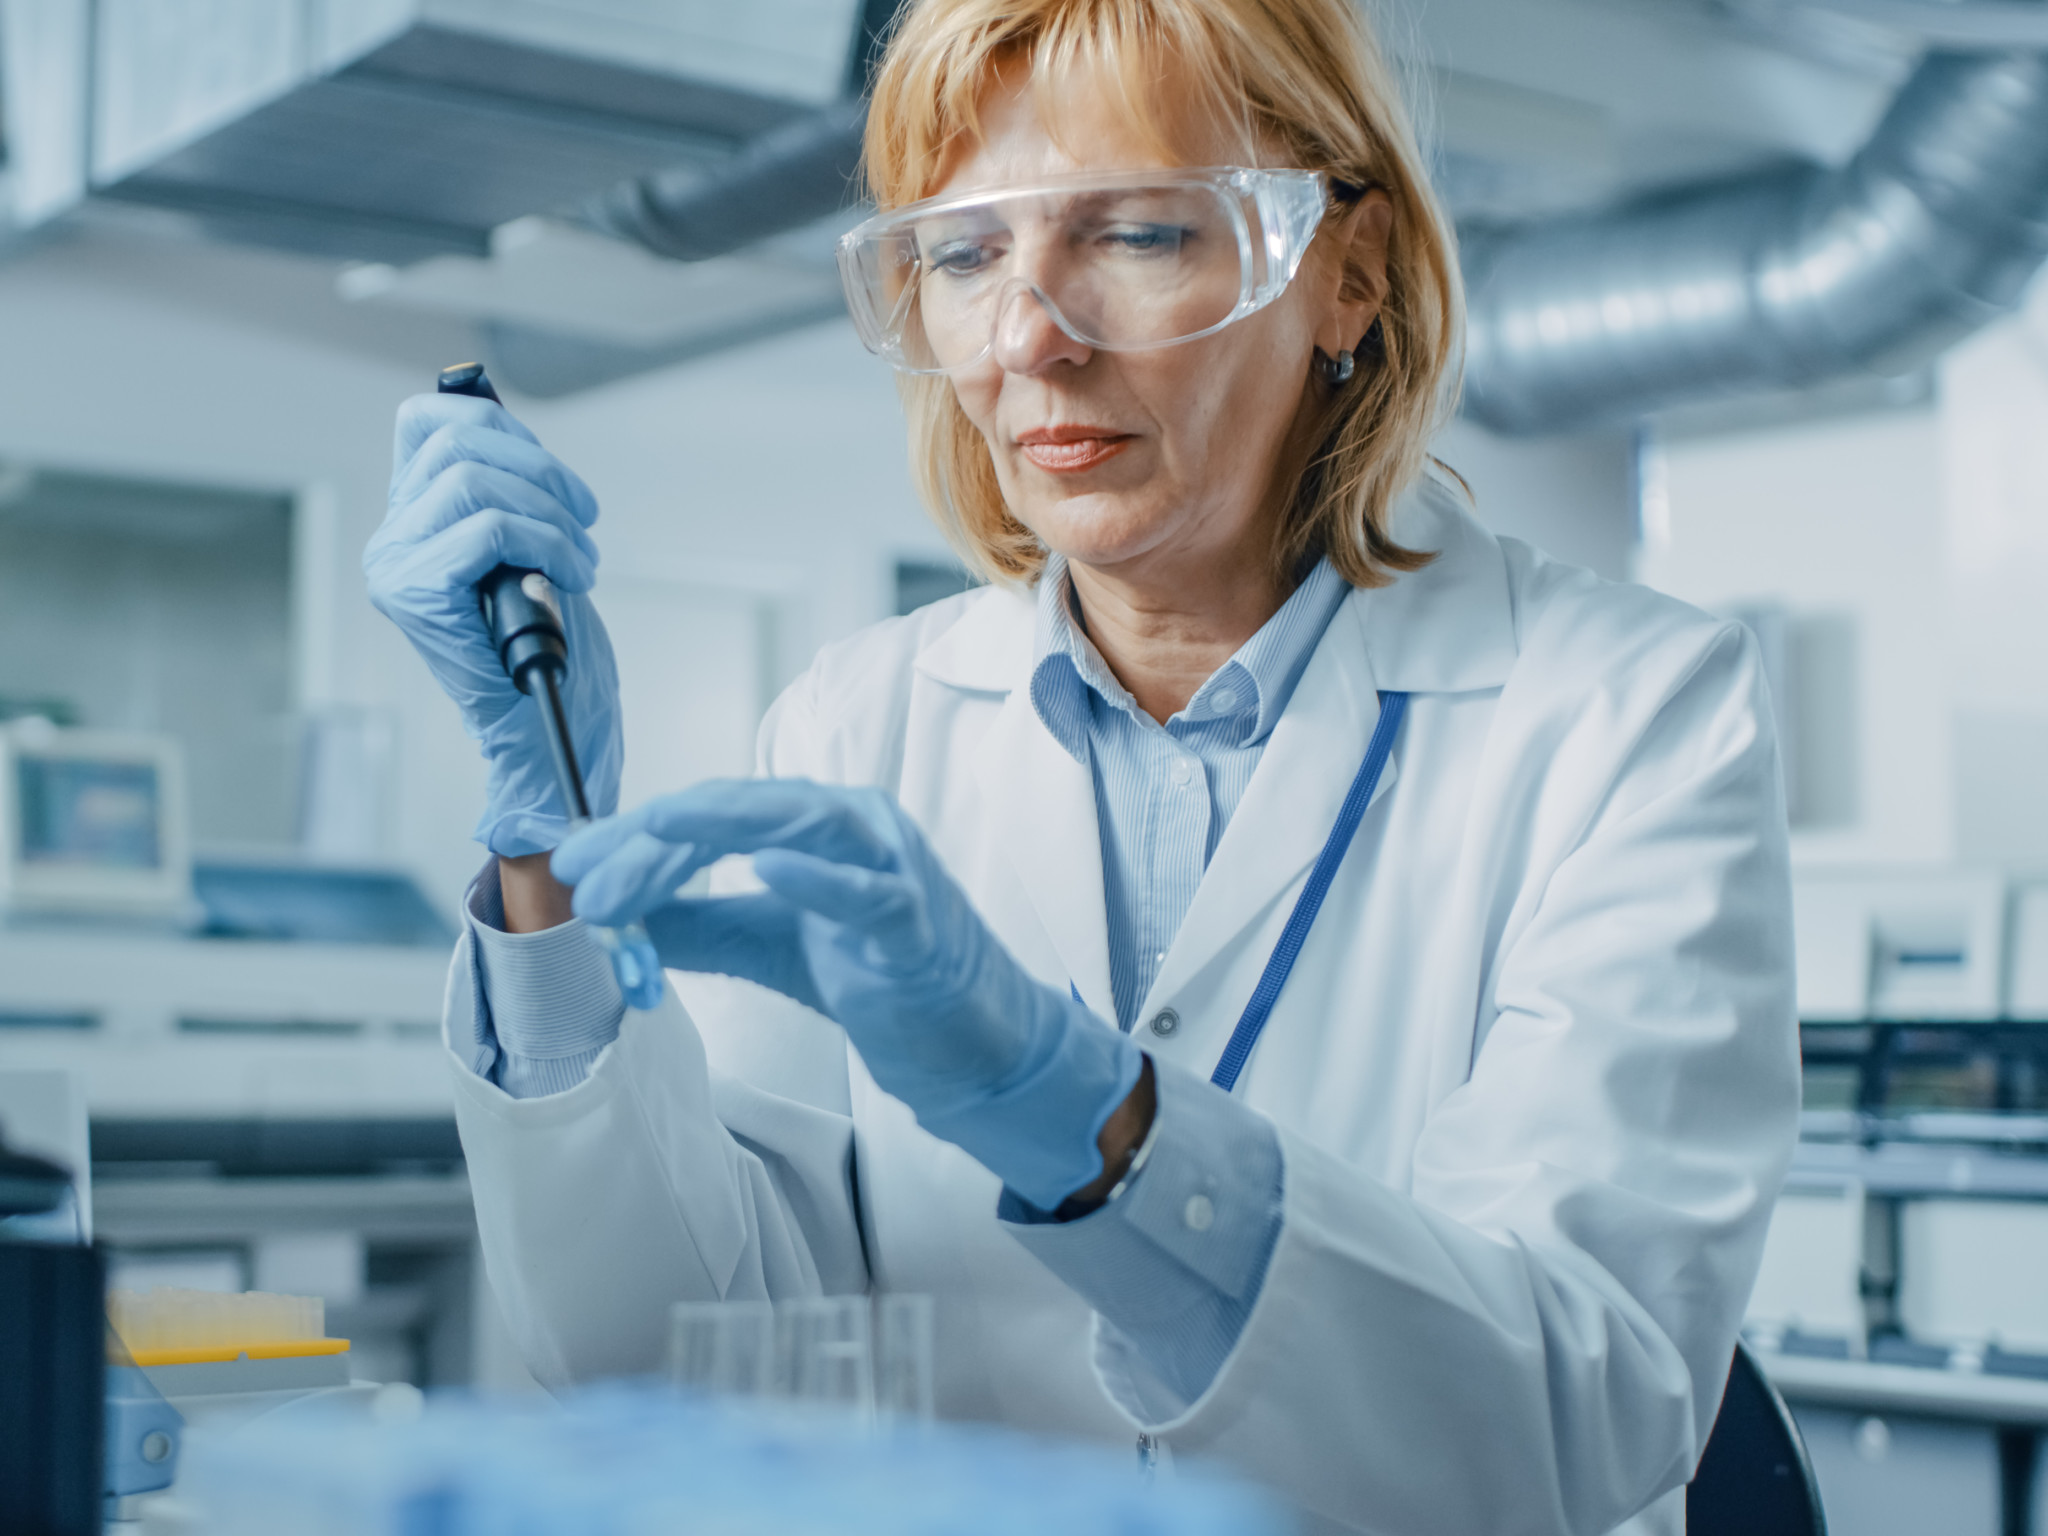 female research scientist taking sample